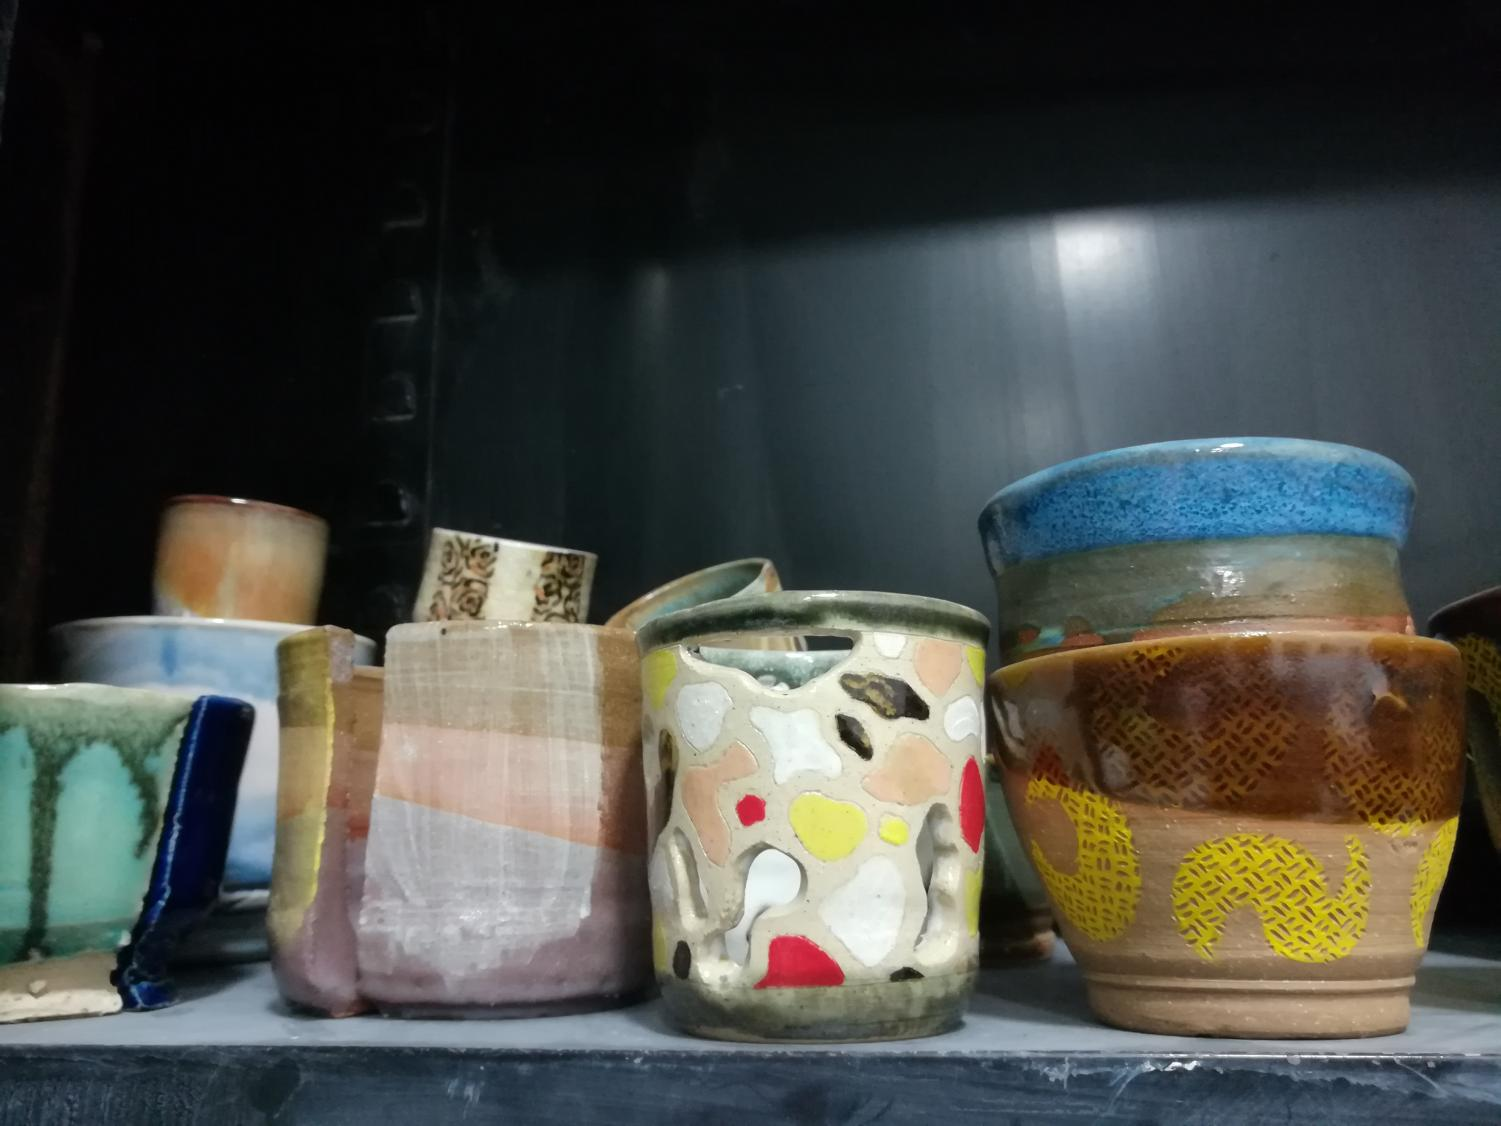 Marshall University's Clay Club is preparing art for their next sale, which will showcase local artists while also benefiting the organization.